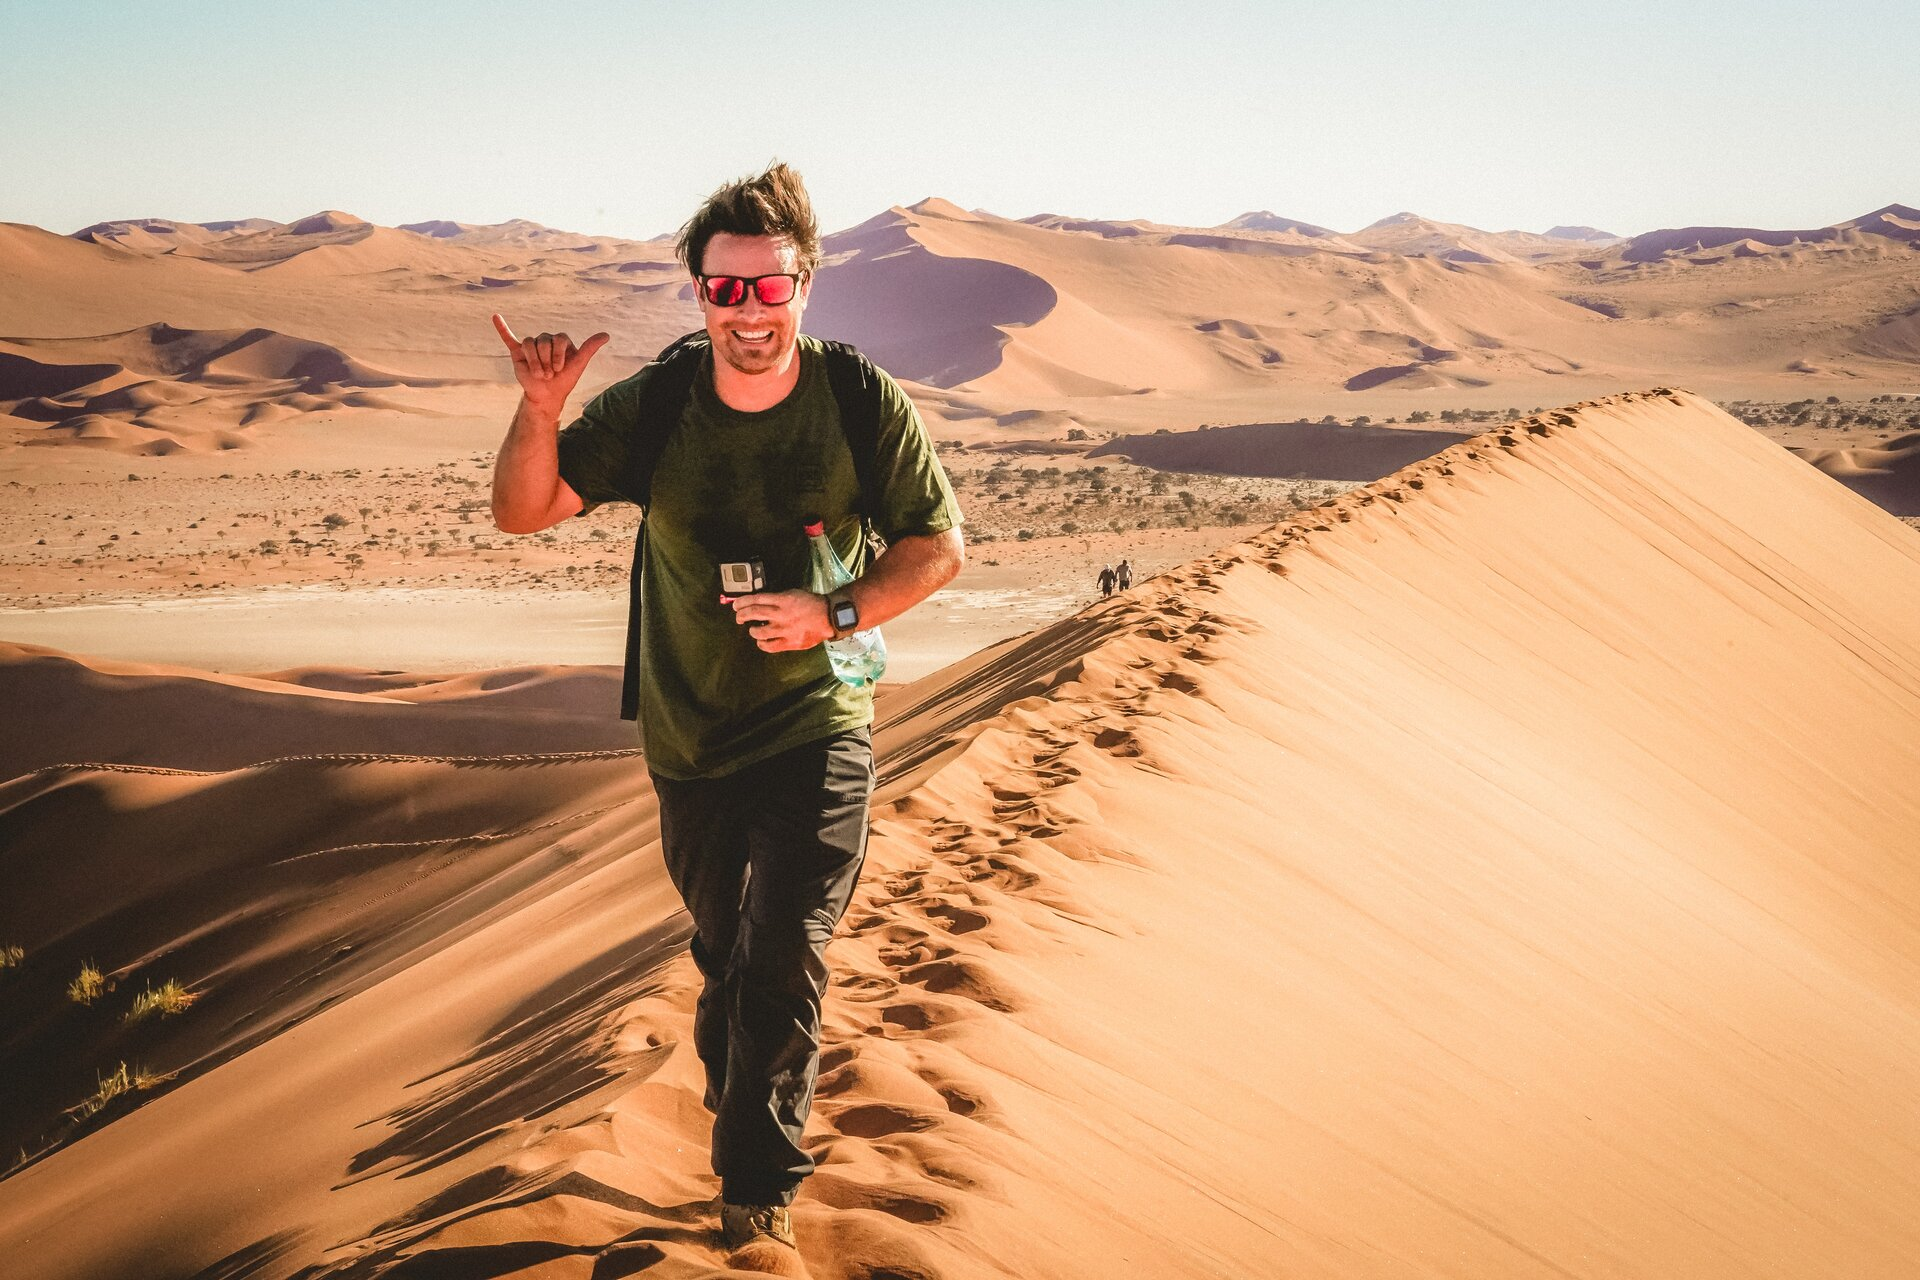 Travel to Namibia for a Warm Welcome No Matter What | Destination Namibia